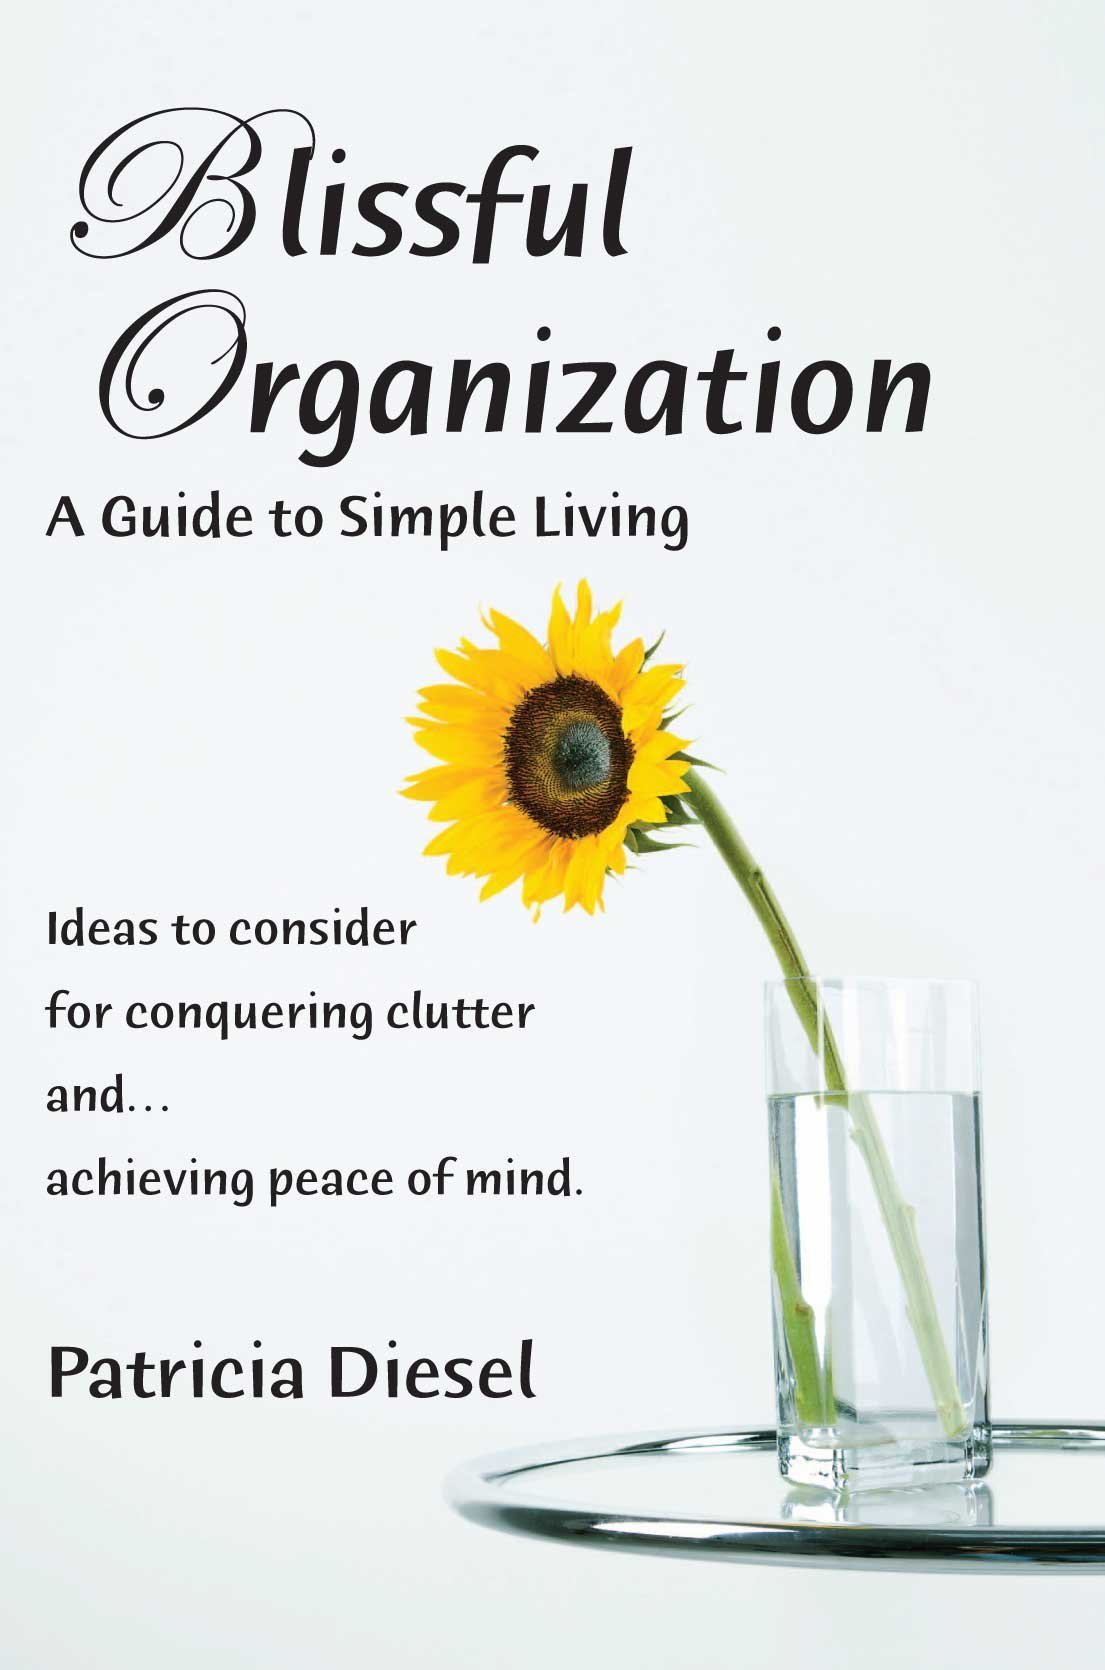 Download blissful organization a guide to simple living for The simple guide to a minimalist life